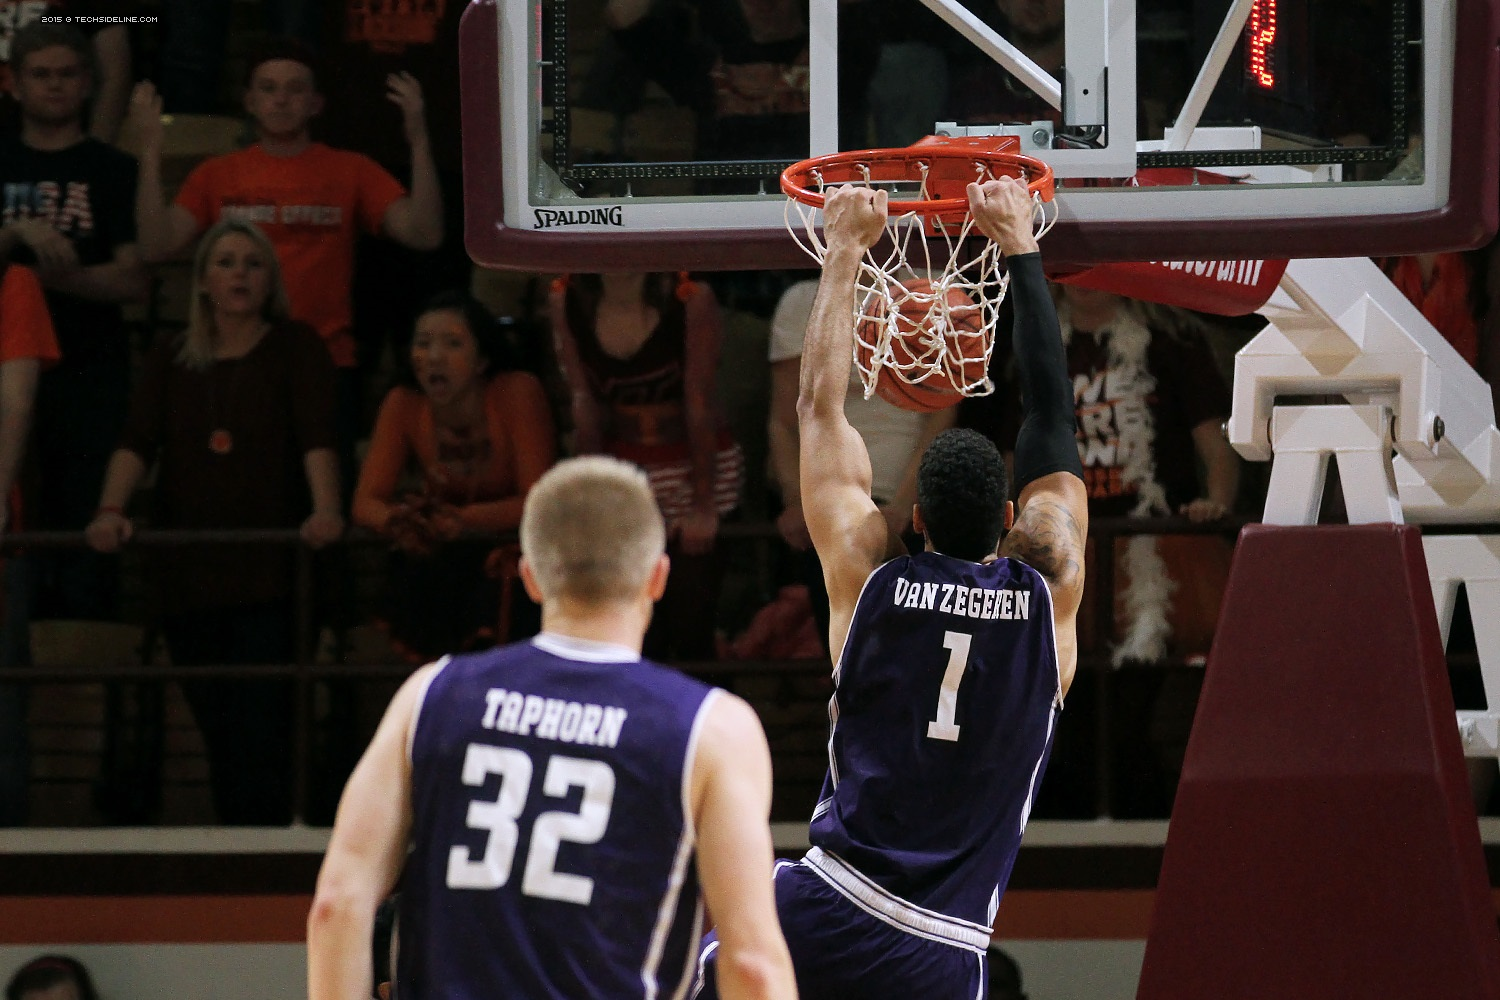 Joey van Zegeren didn't have a good game against his former team, but he did throw down this dunk.